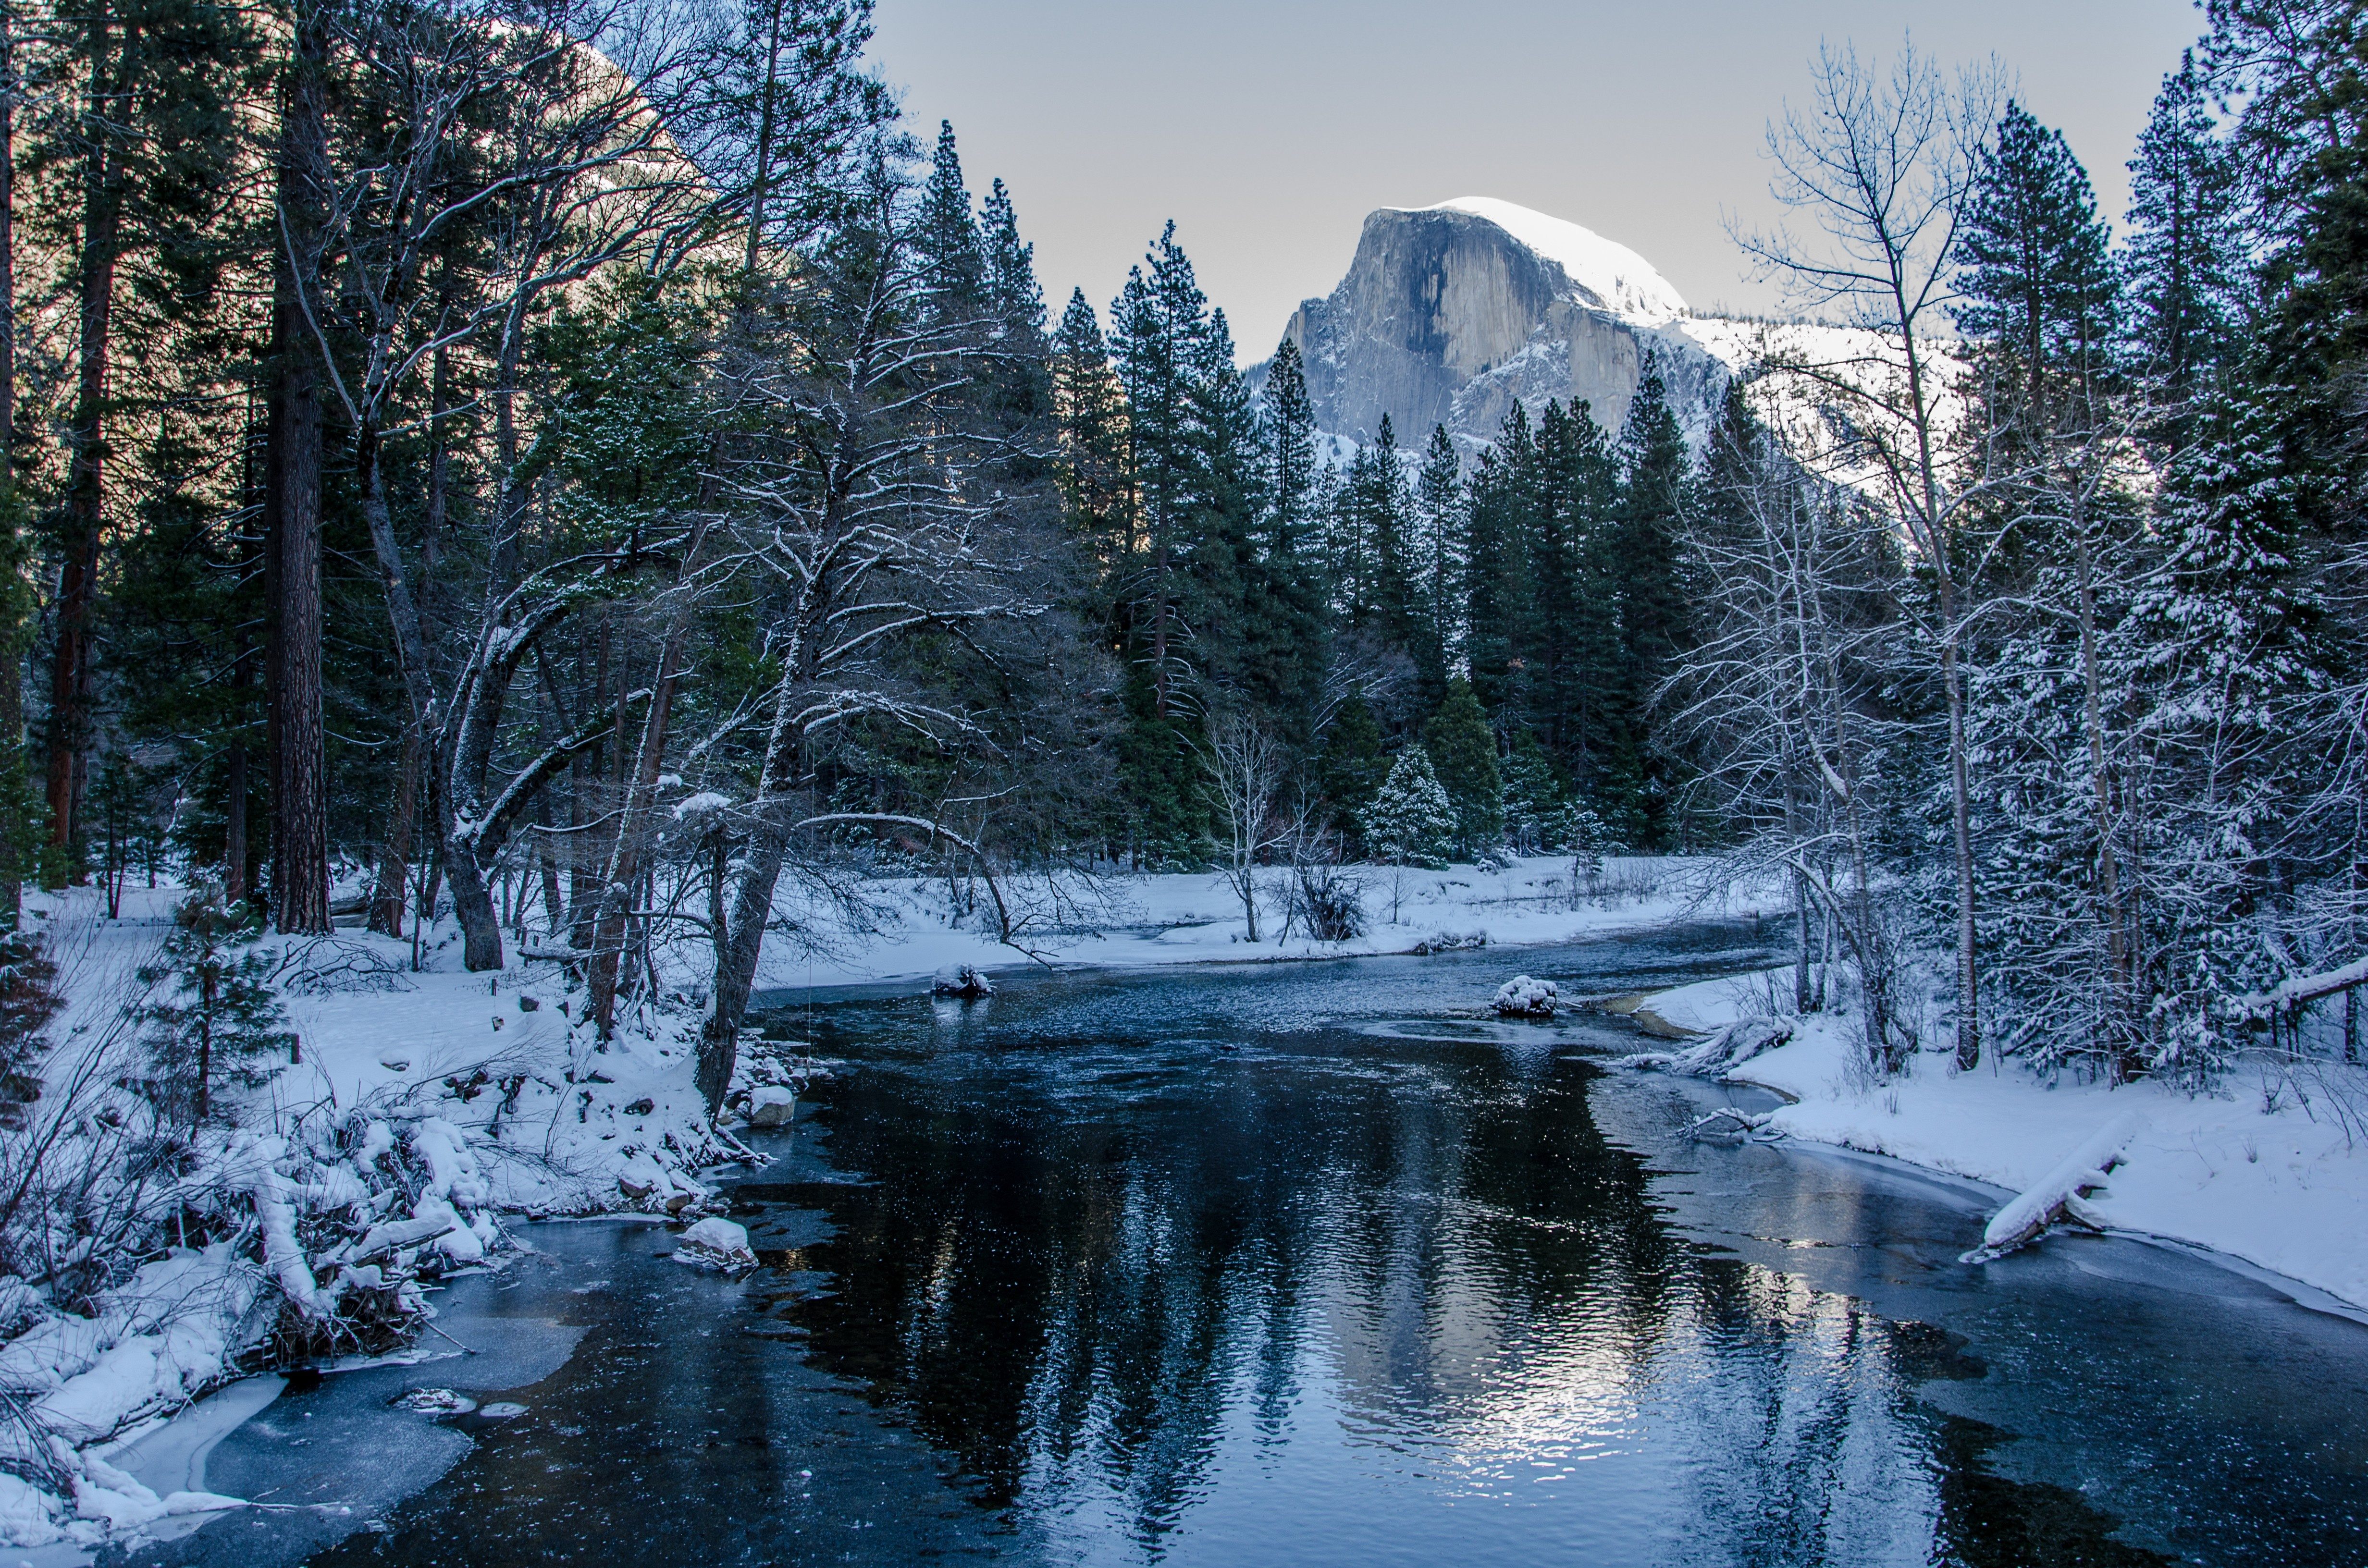 Yosemite National Park winter river trees mountains landscape 4928x3264